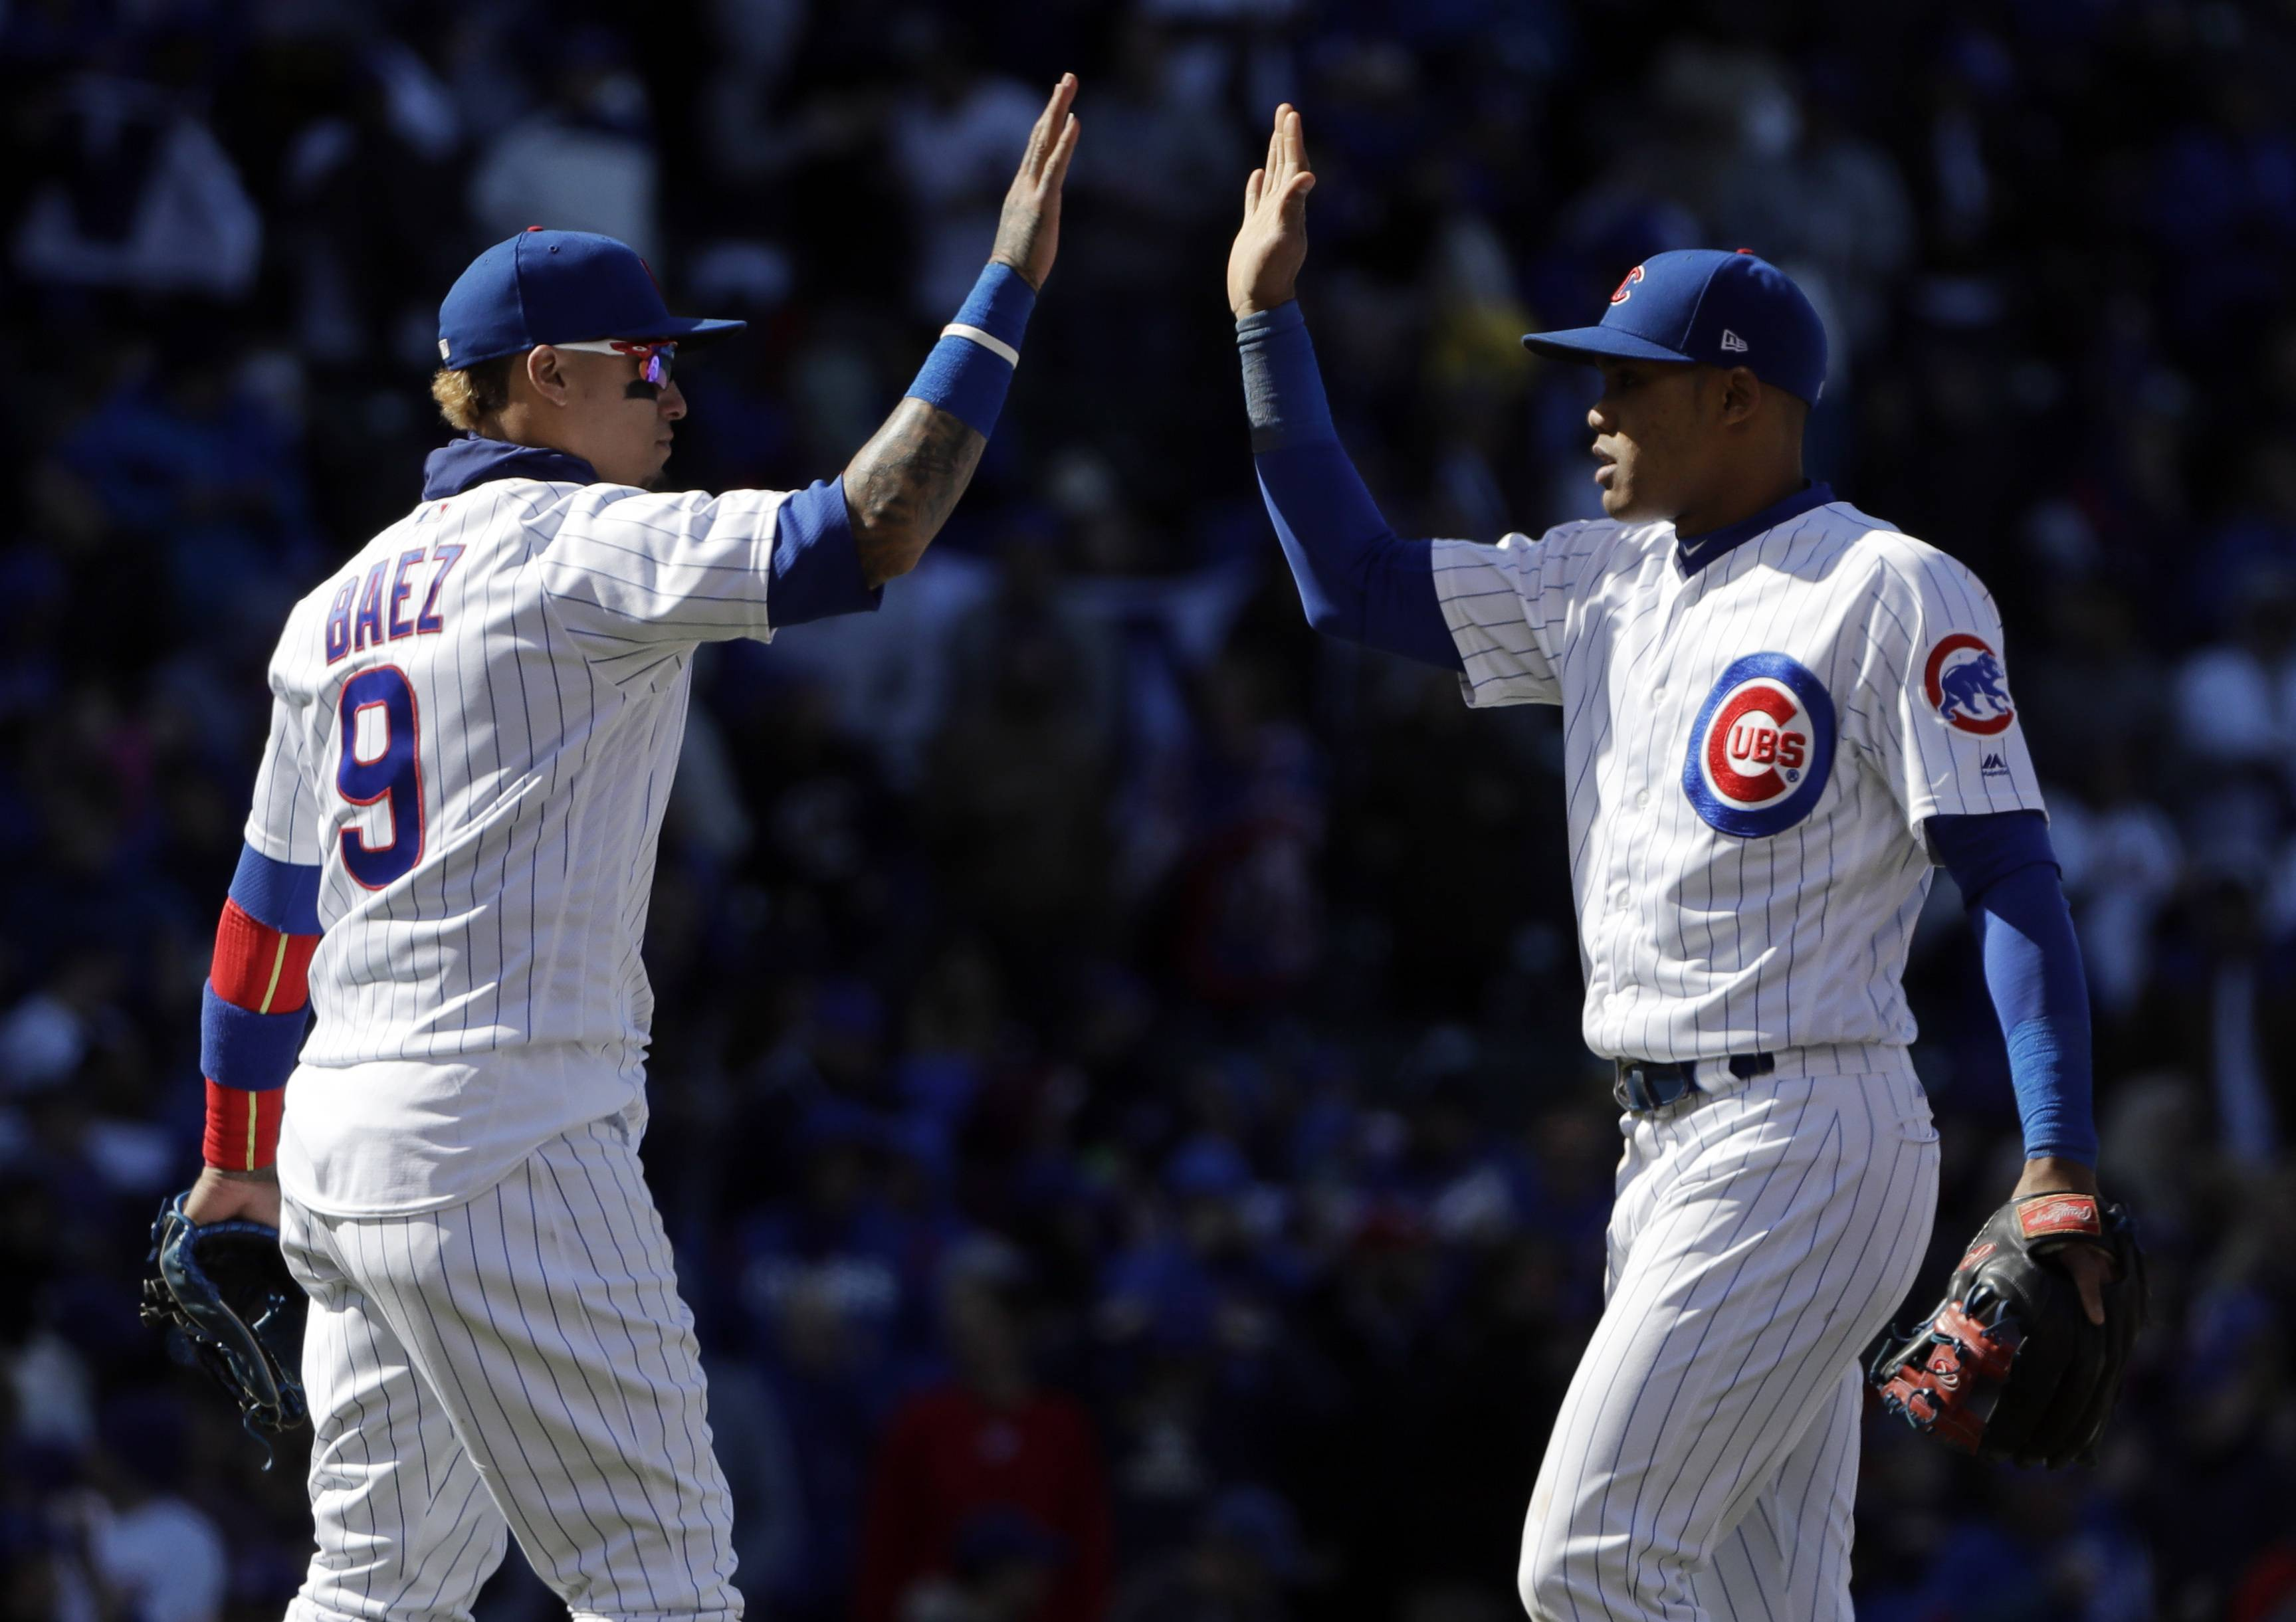 The Cubs' Javier Baez, left, celebrates with Addison Russell after they defeated the Milwaukee Brewers on Sunday at Wrigley Field.